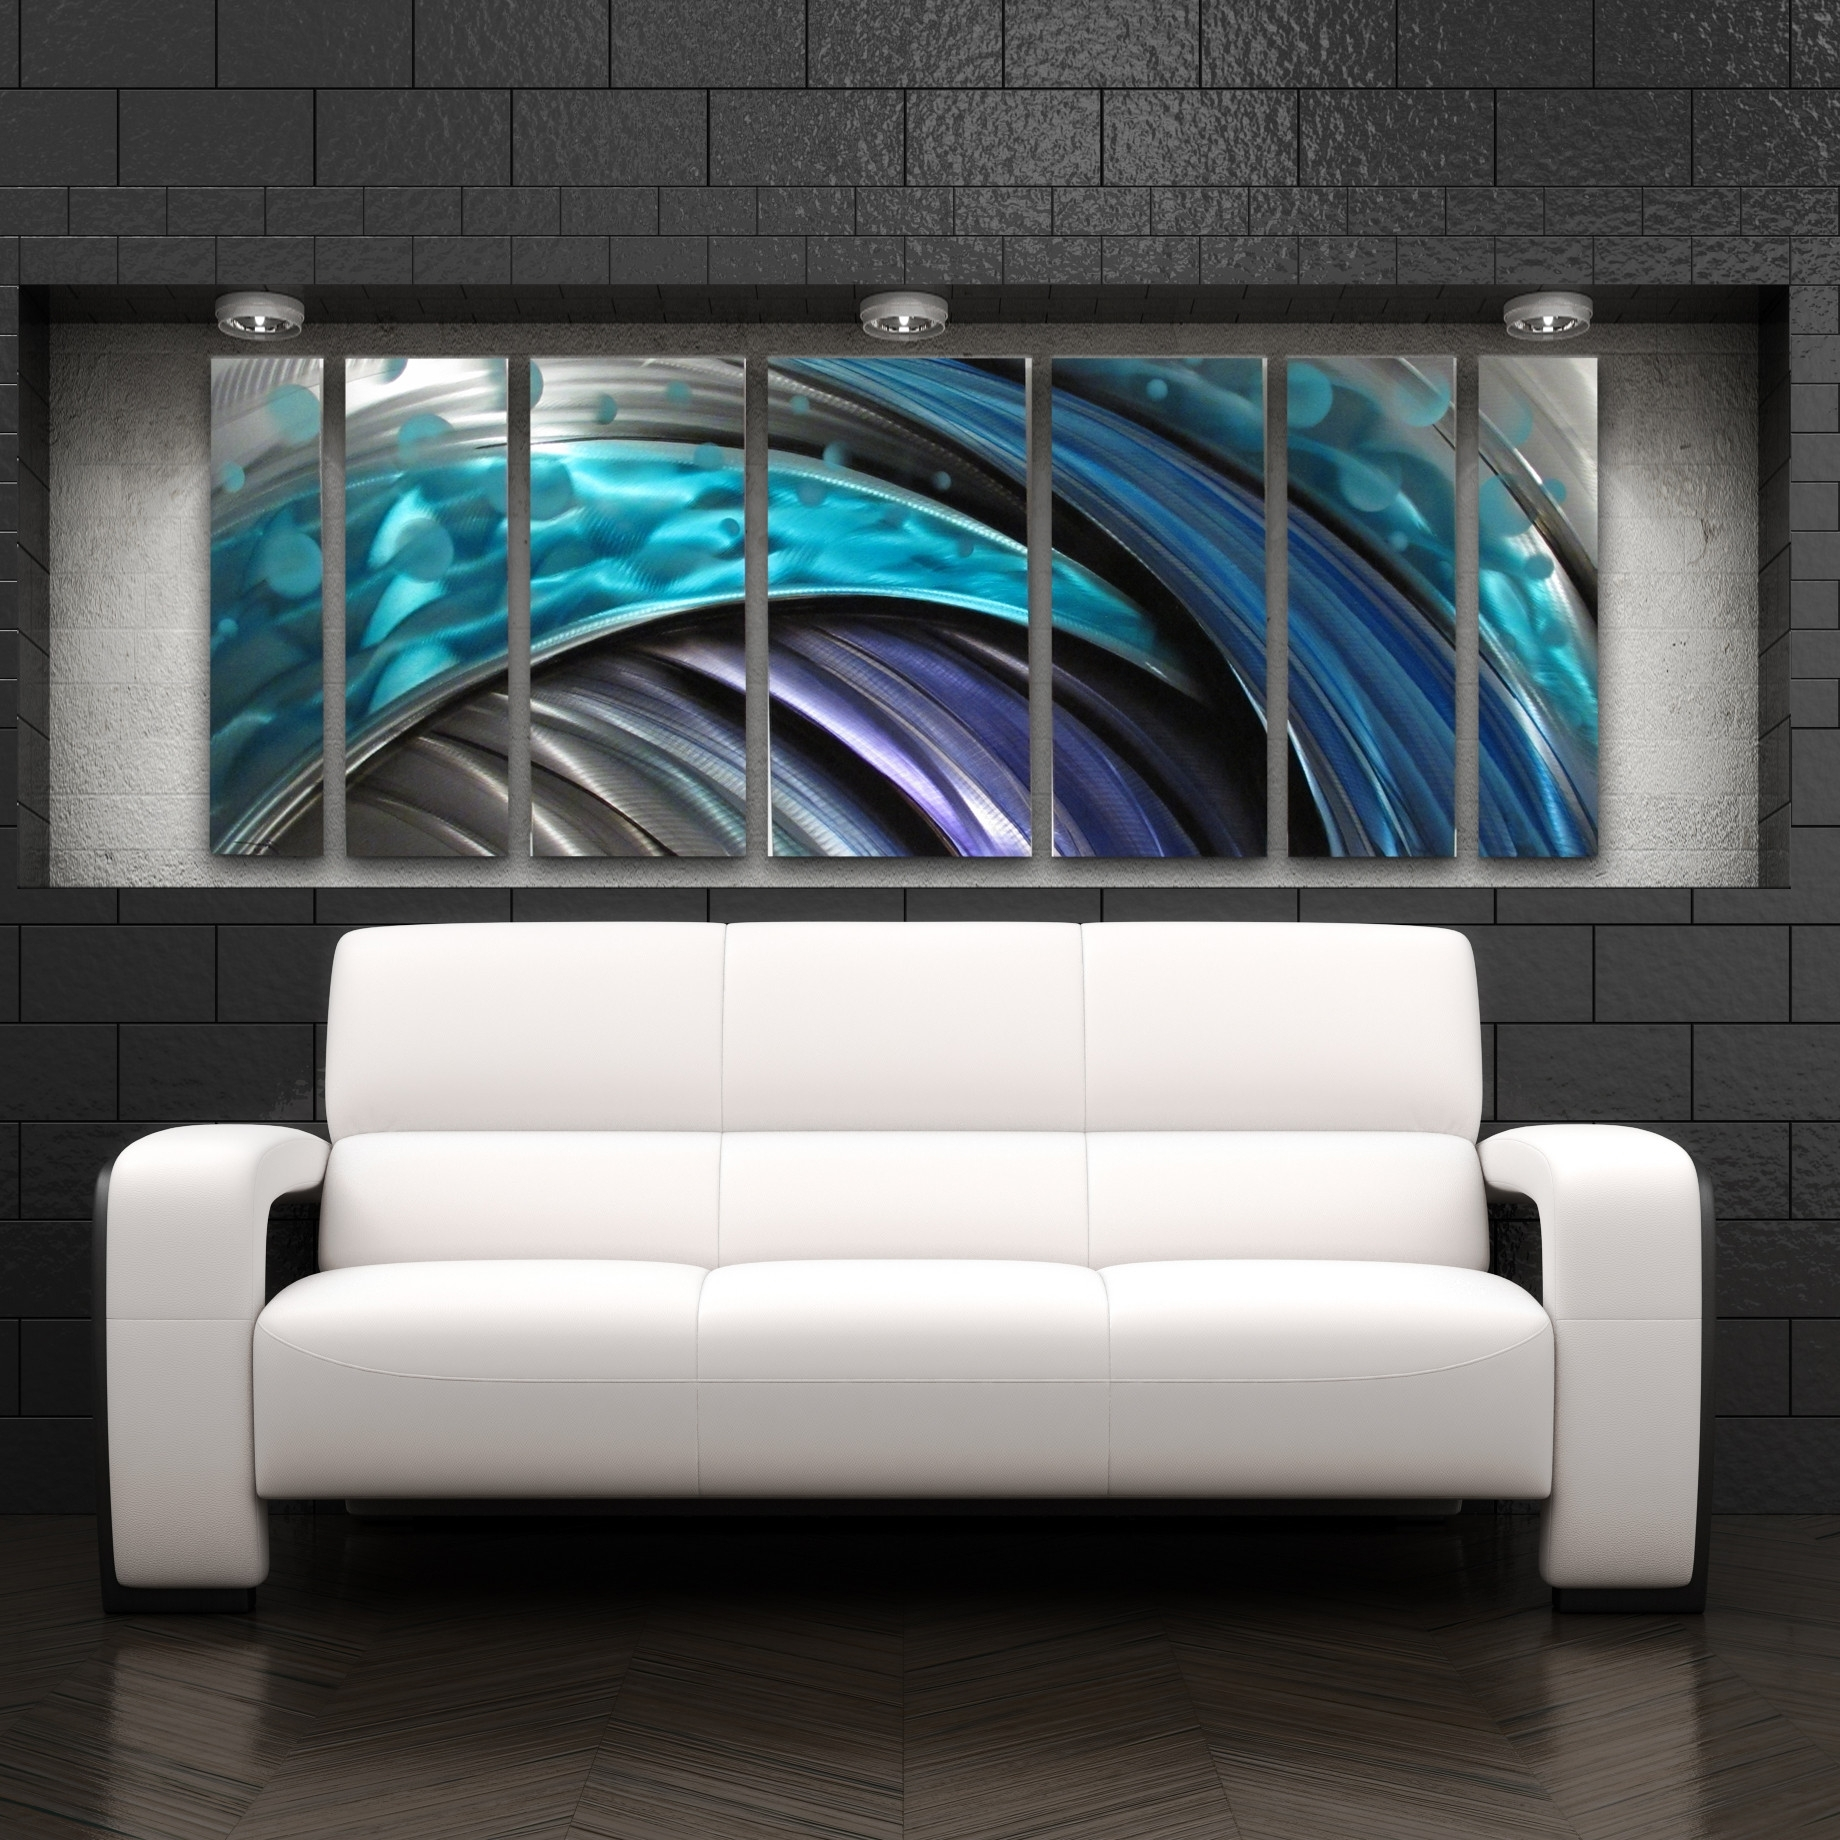 Contemporary Wall Art In 2018 Contemporary Wall Art Superb Wall Art Modern – Wall Art And Wall (View 5 of 15)